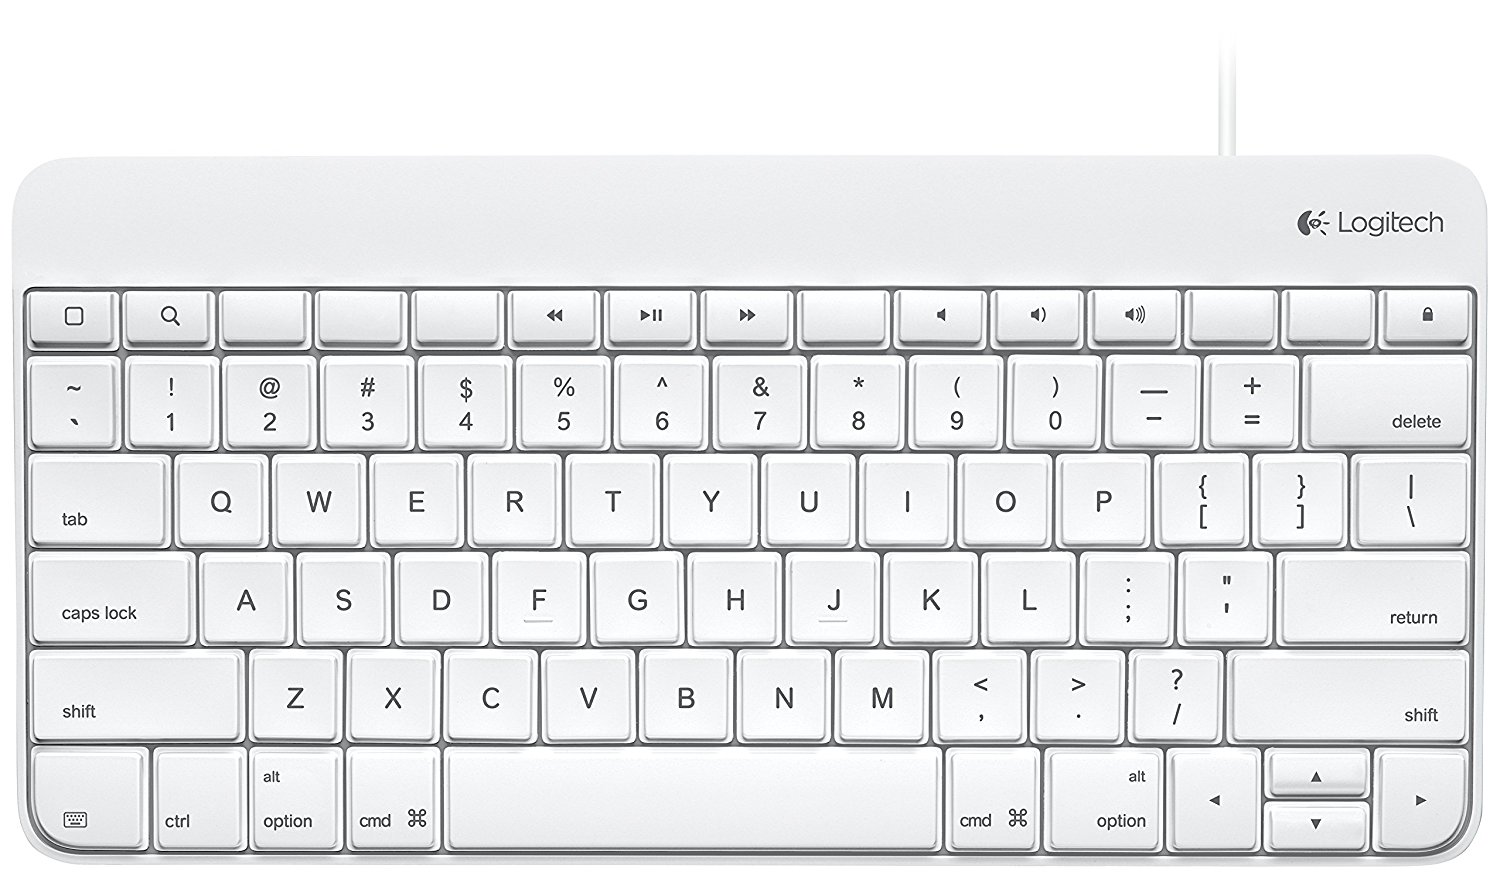 Logitech Wired Keyboard for iPad 1 2 3 - 920-006340